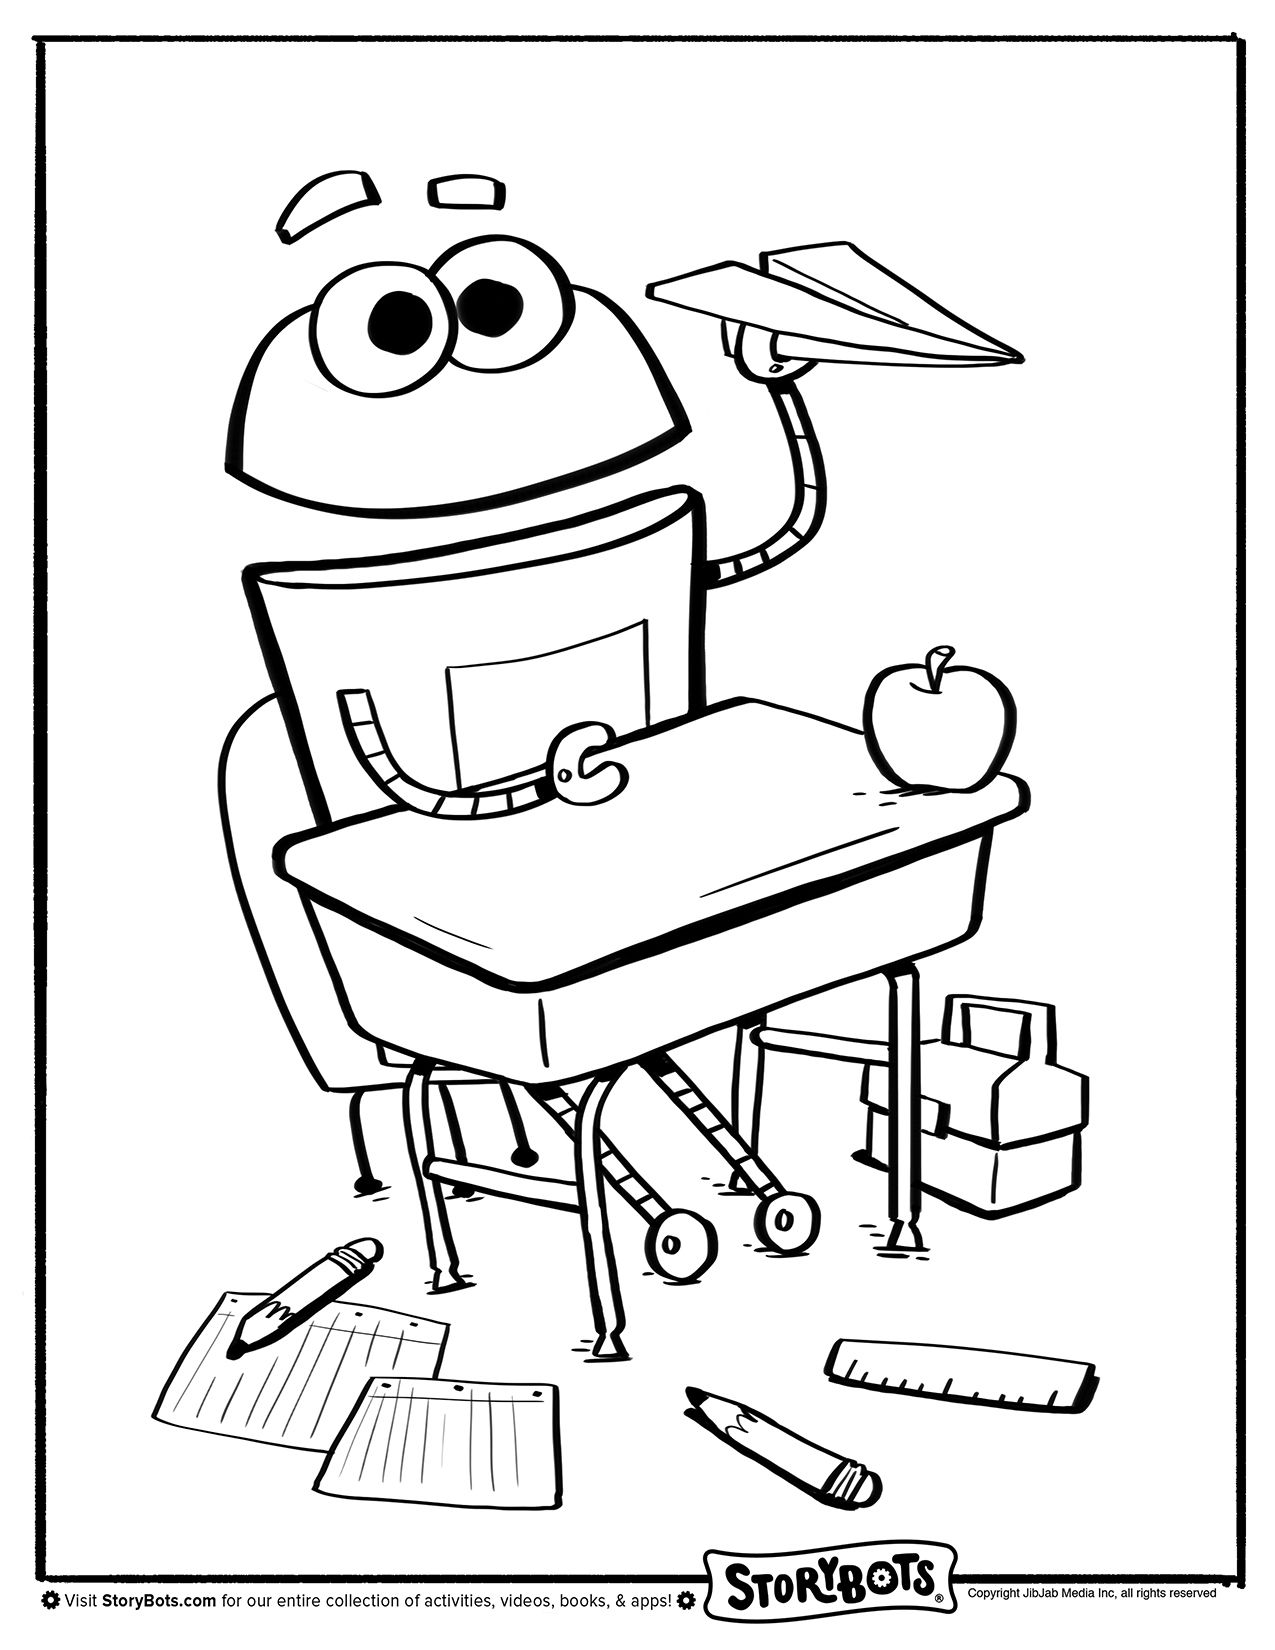 storybots coloring pages Coloring Sheet   Paper Airplane | Back to School Activity Sheets  storybots coloring pages